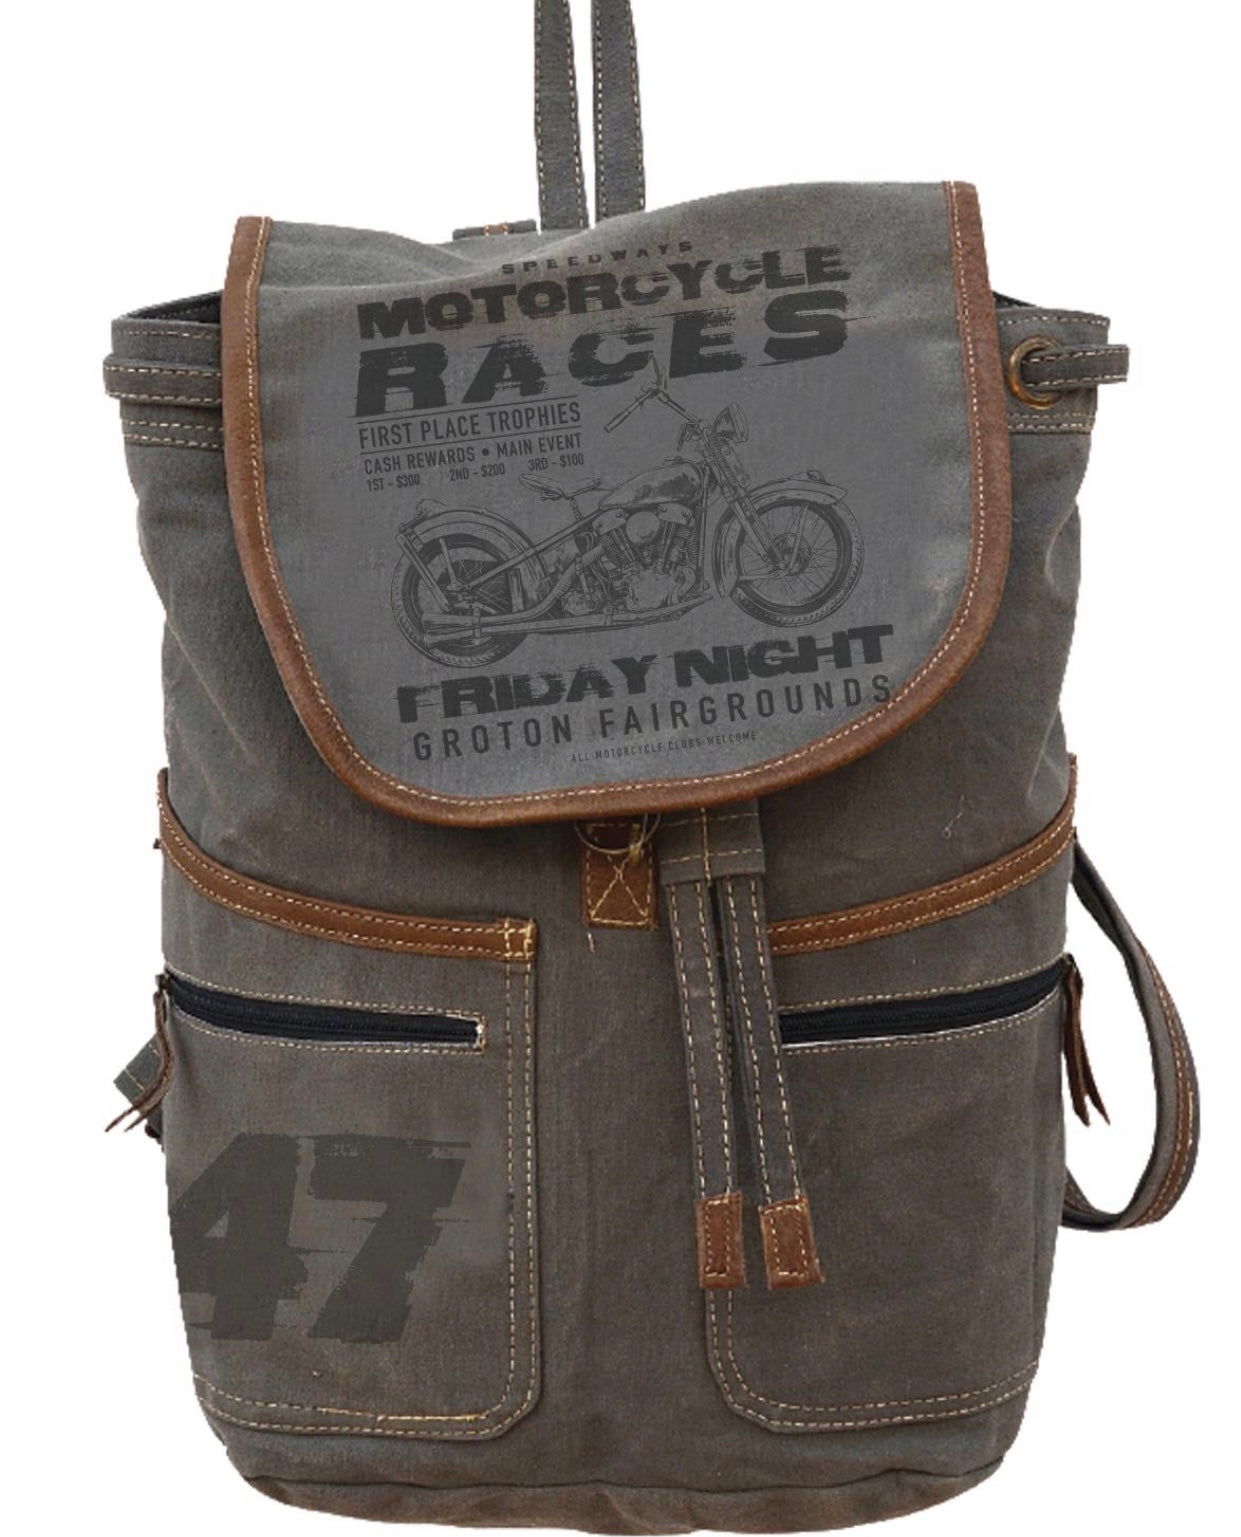 MOTORCYCLE RACES BACKPACK - The Wall Kids, Inc.